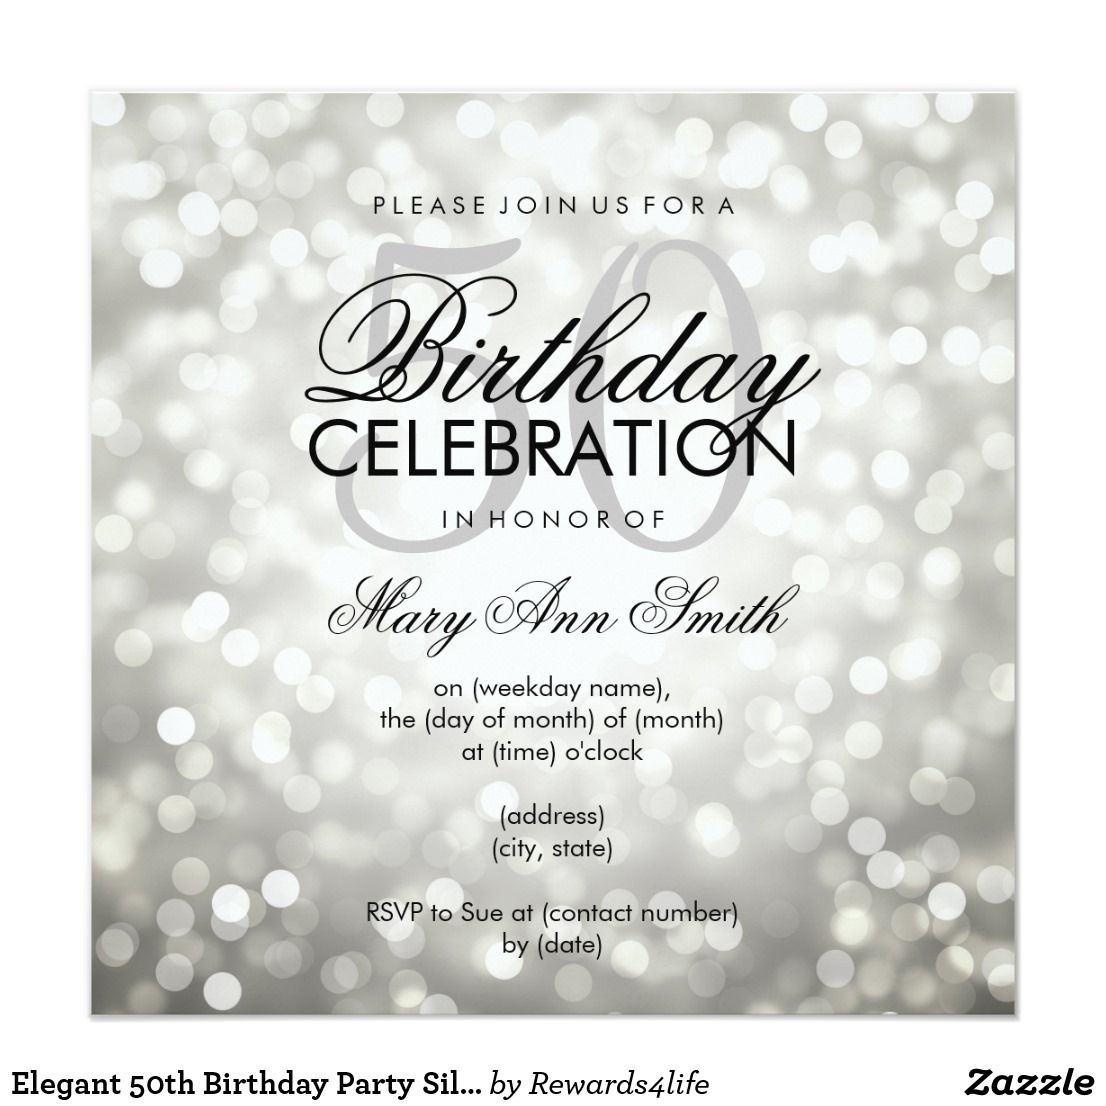 Elegant 50th Birthday Party Silver Glitter Lights Invitation ...